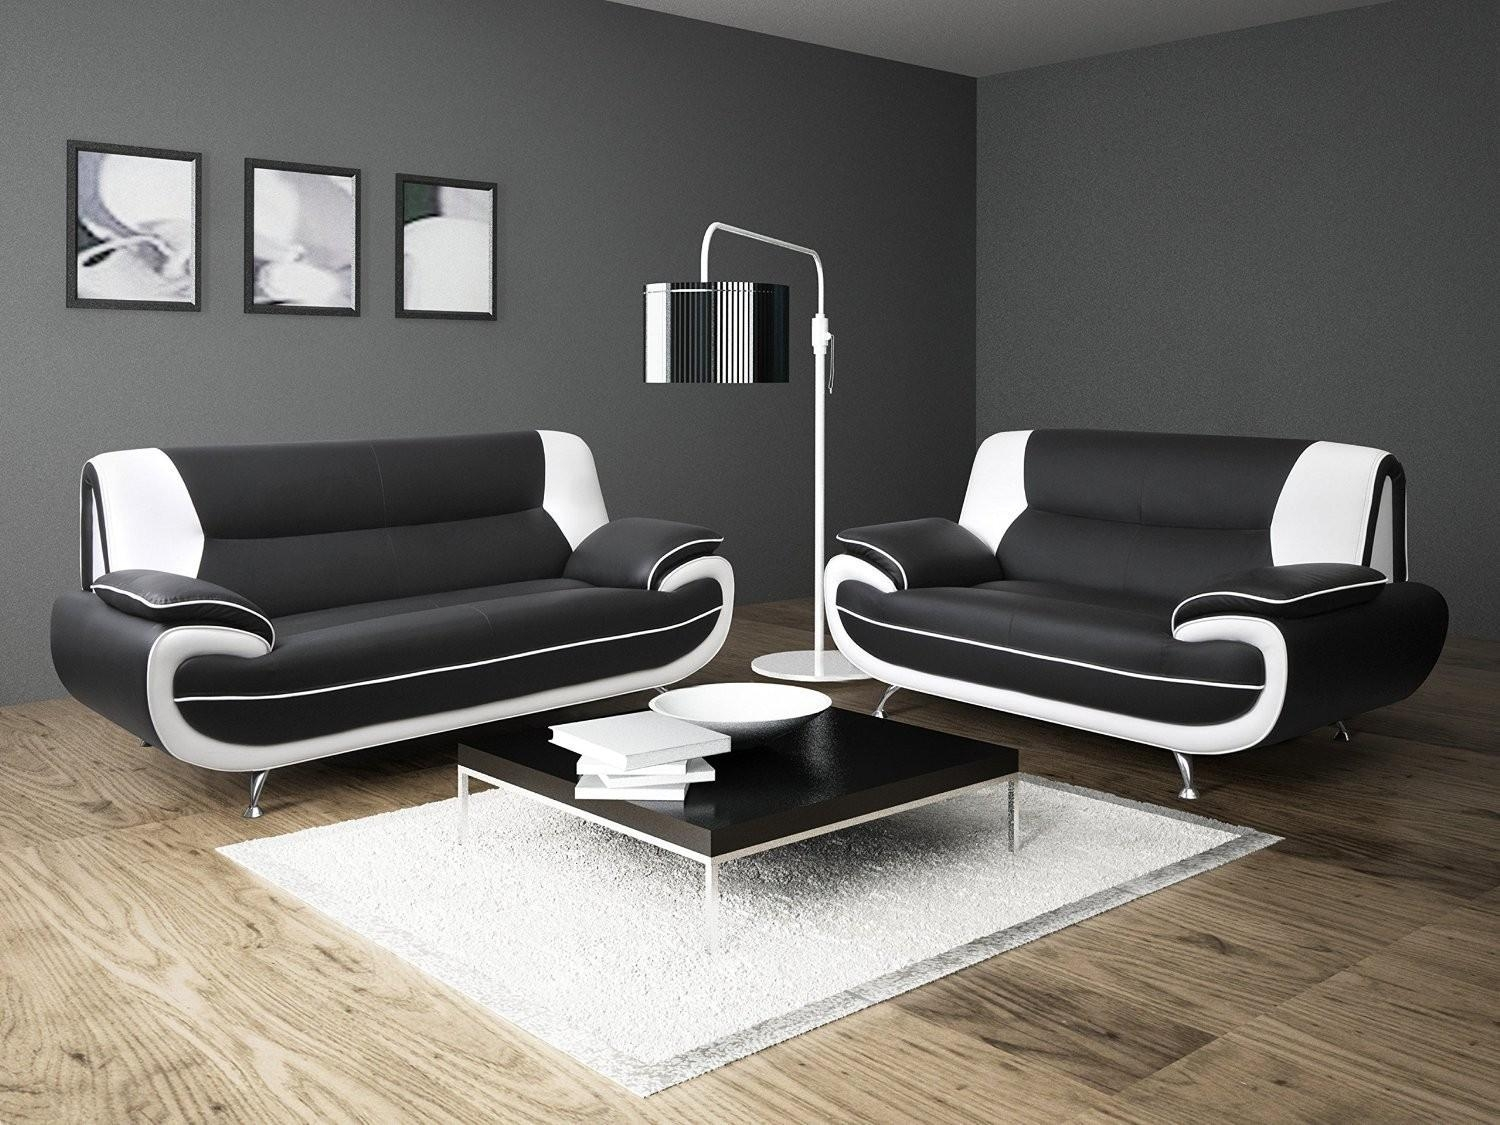 Black And White Leather Sofa Set | Sofa Gallery | Kengire In Black And White Leather Sofas (View 3 of 20)